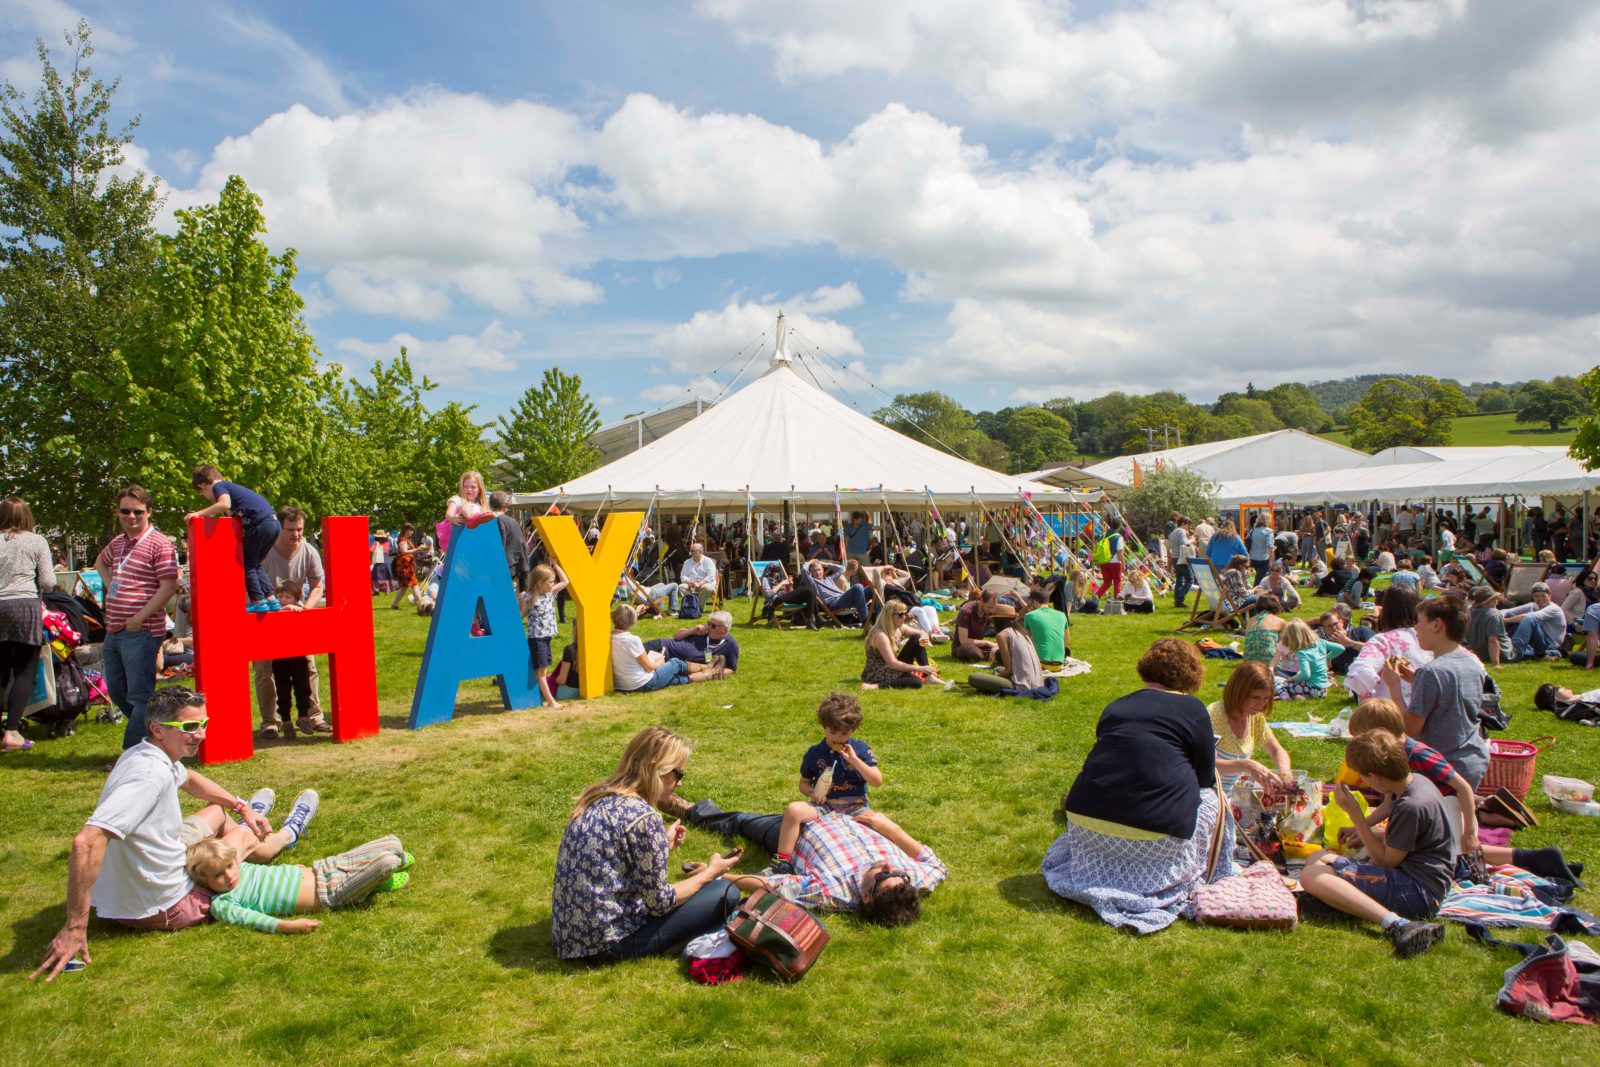 Til I'm Blue Launches, and Hay Festival Awaits